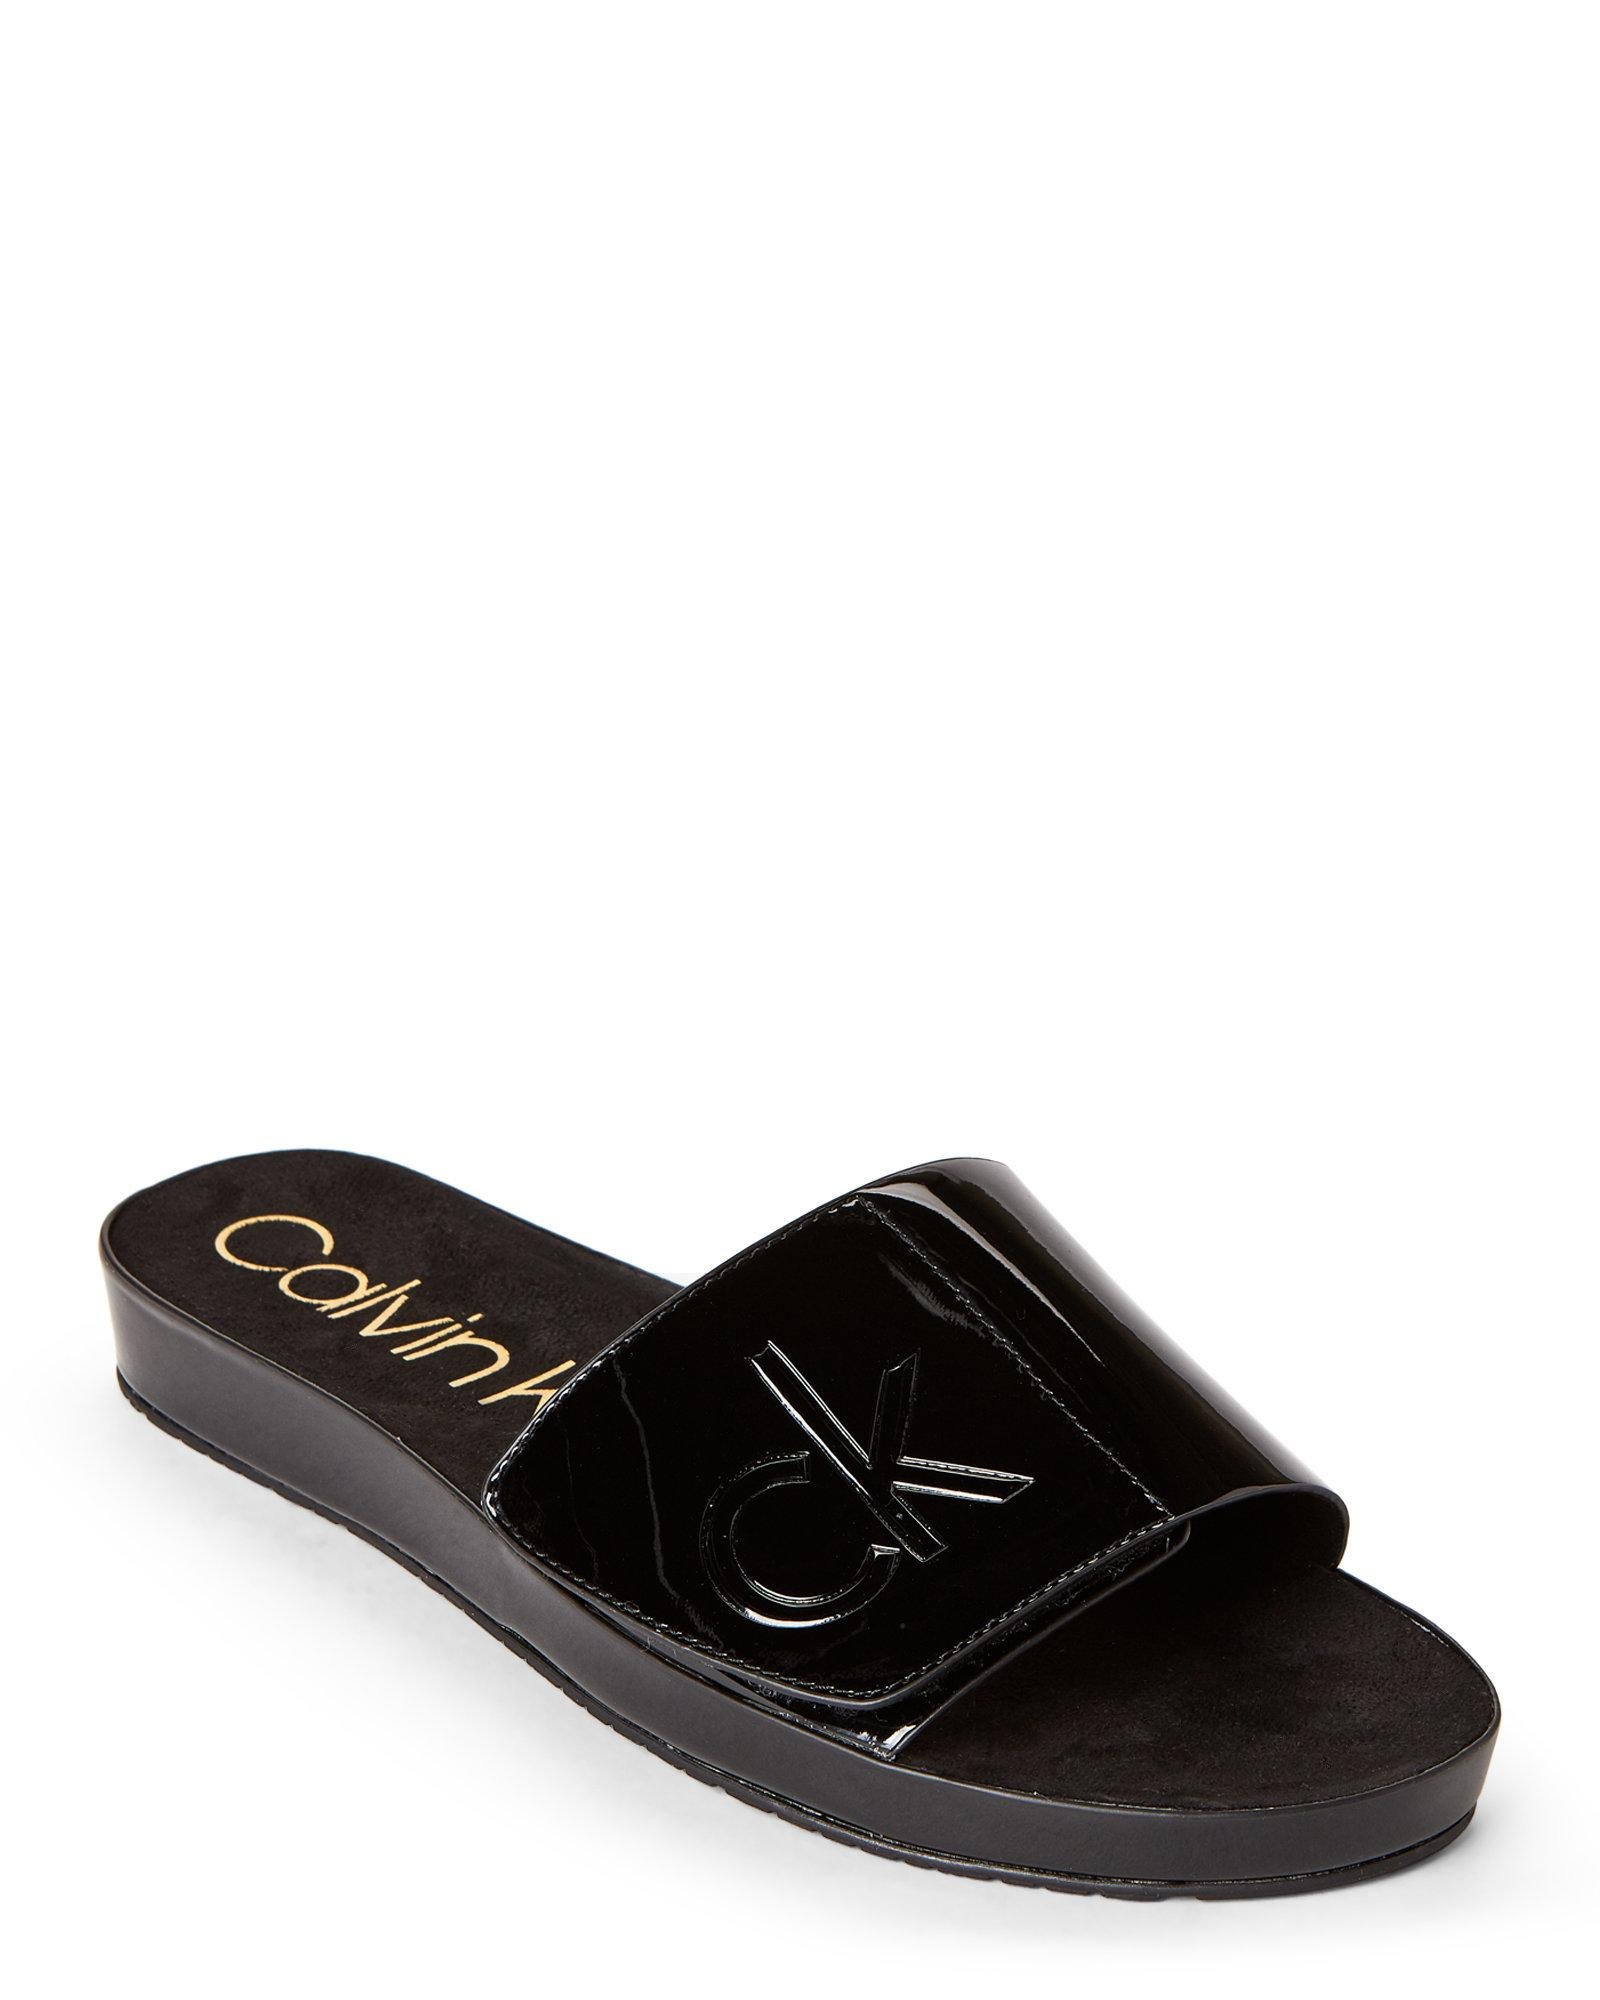 d68073b1ef5d4 CALVIN KLEIN 205W39NYC Black Marlina Flat Slide Sandals